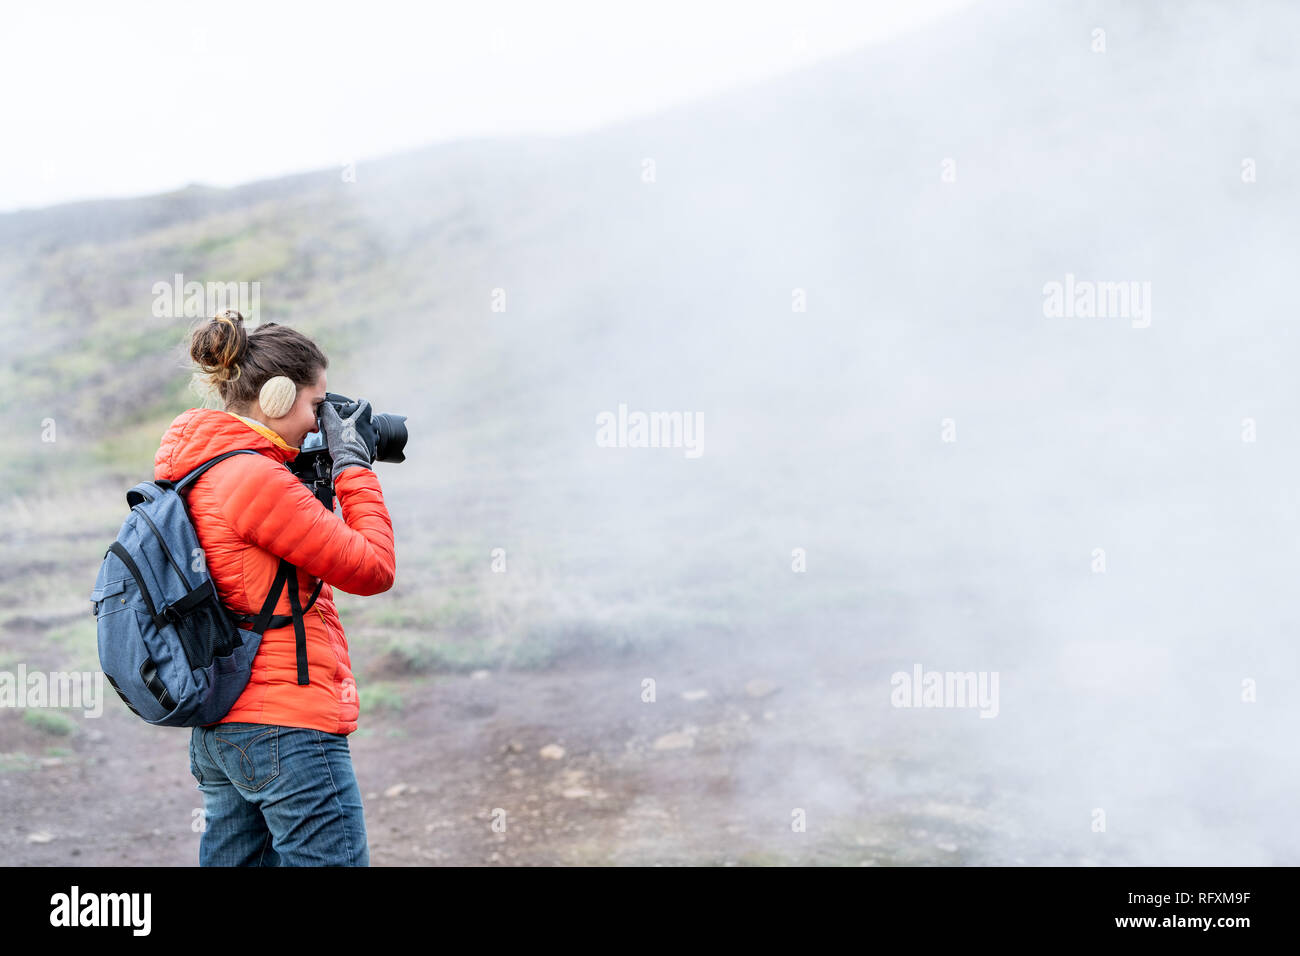 Reykjadalur, Iceland Hot Springs road footpath with steam fumarole vent during cold autumn day in golden circle with people woman girl taking picture  - Stock Image